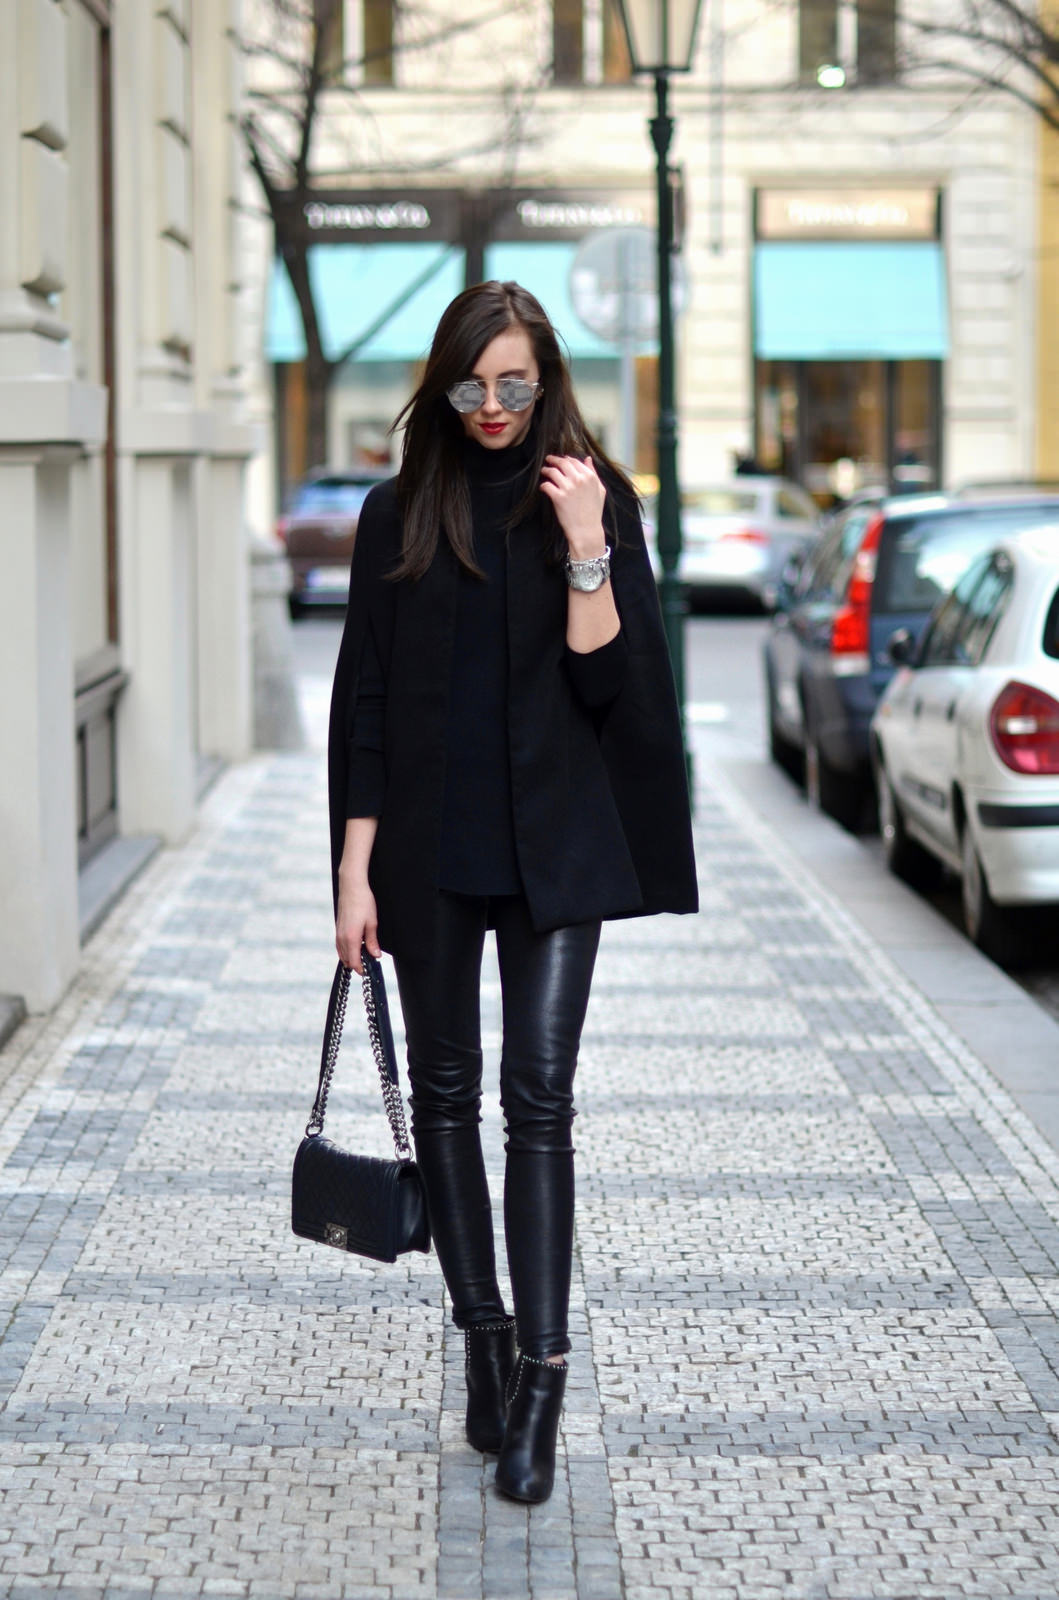 Barbora Ondrackova wears all black in this sleek and stylish outfit, consisting of leather leggings, a black cape coat, and a minature black Chanel bag. This look is minimalistic yet sophisticated! Cape: Missguided , Turtleneck: Proenza Schouler, Leggings: Balenciaga, Boots: Givenchy boots, Bag: Chanel.